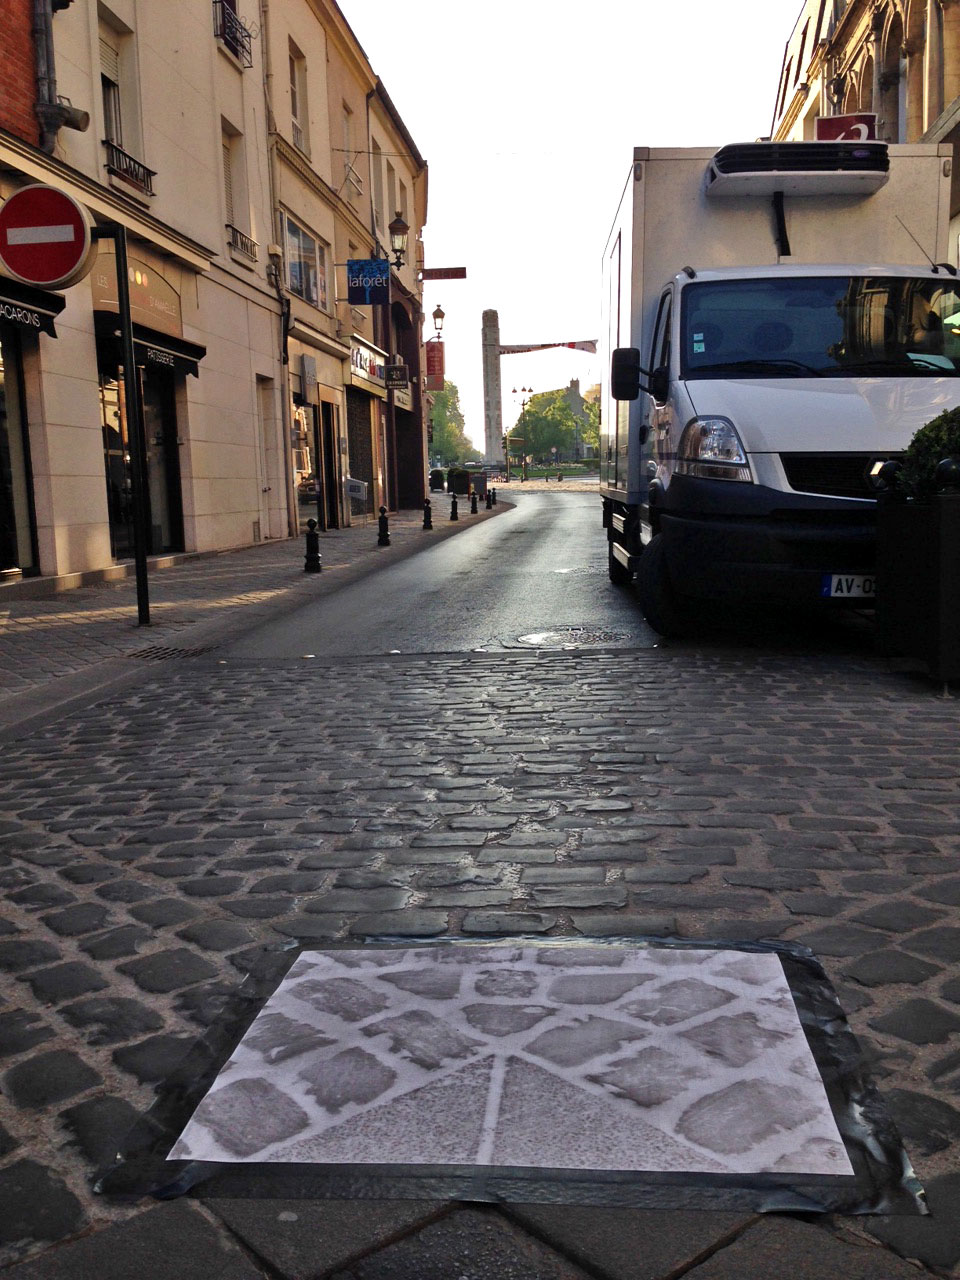 Street-Print-in-progress-Ay-France-2015a_x1